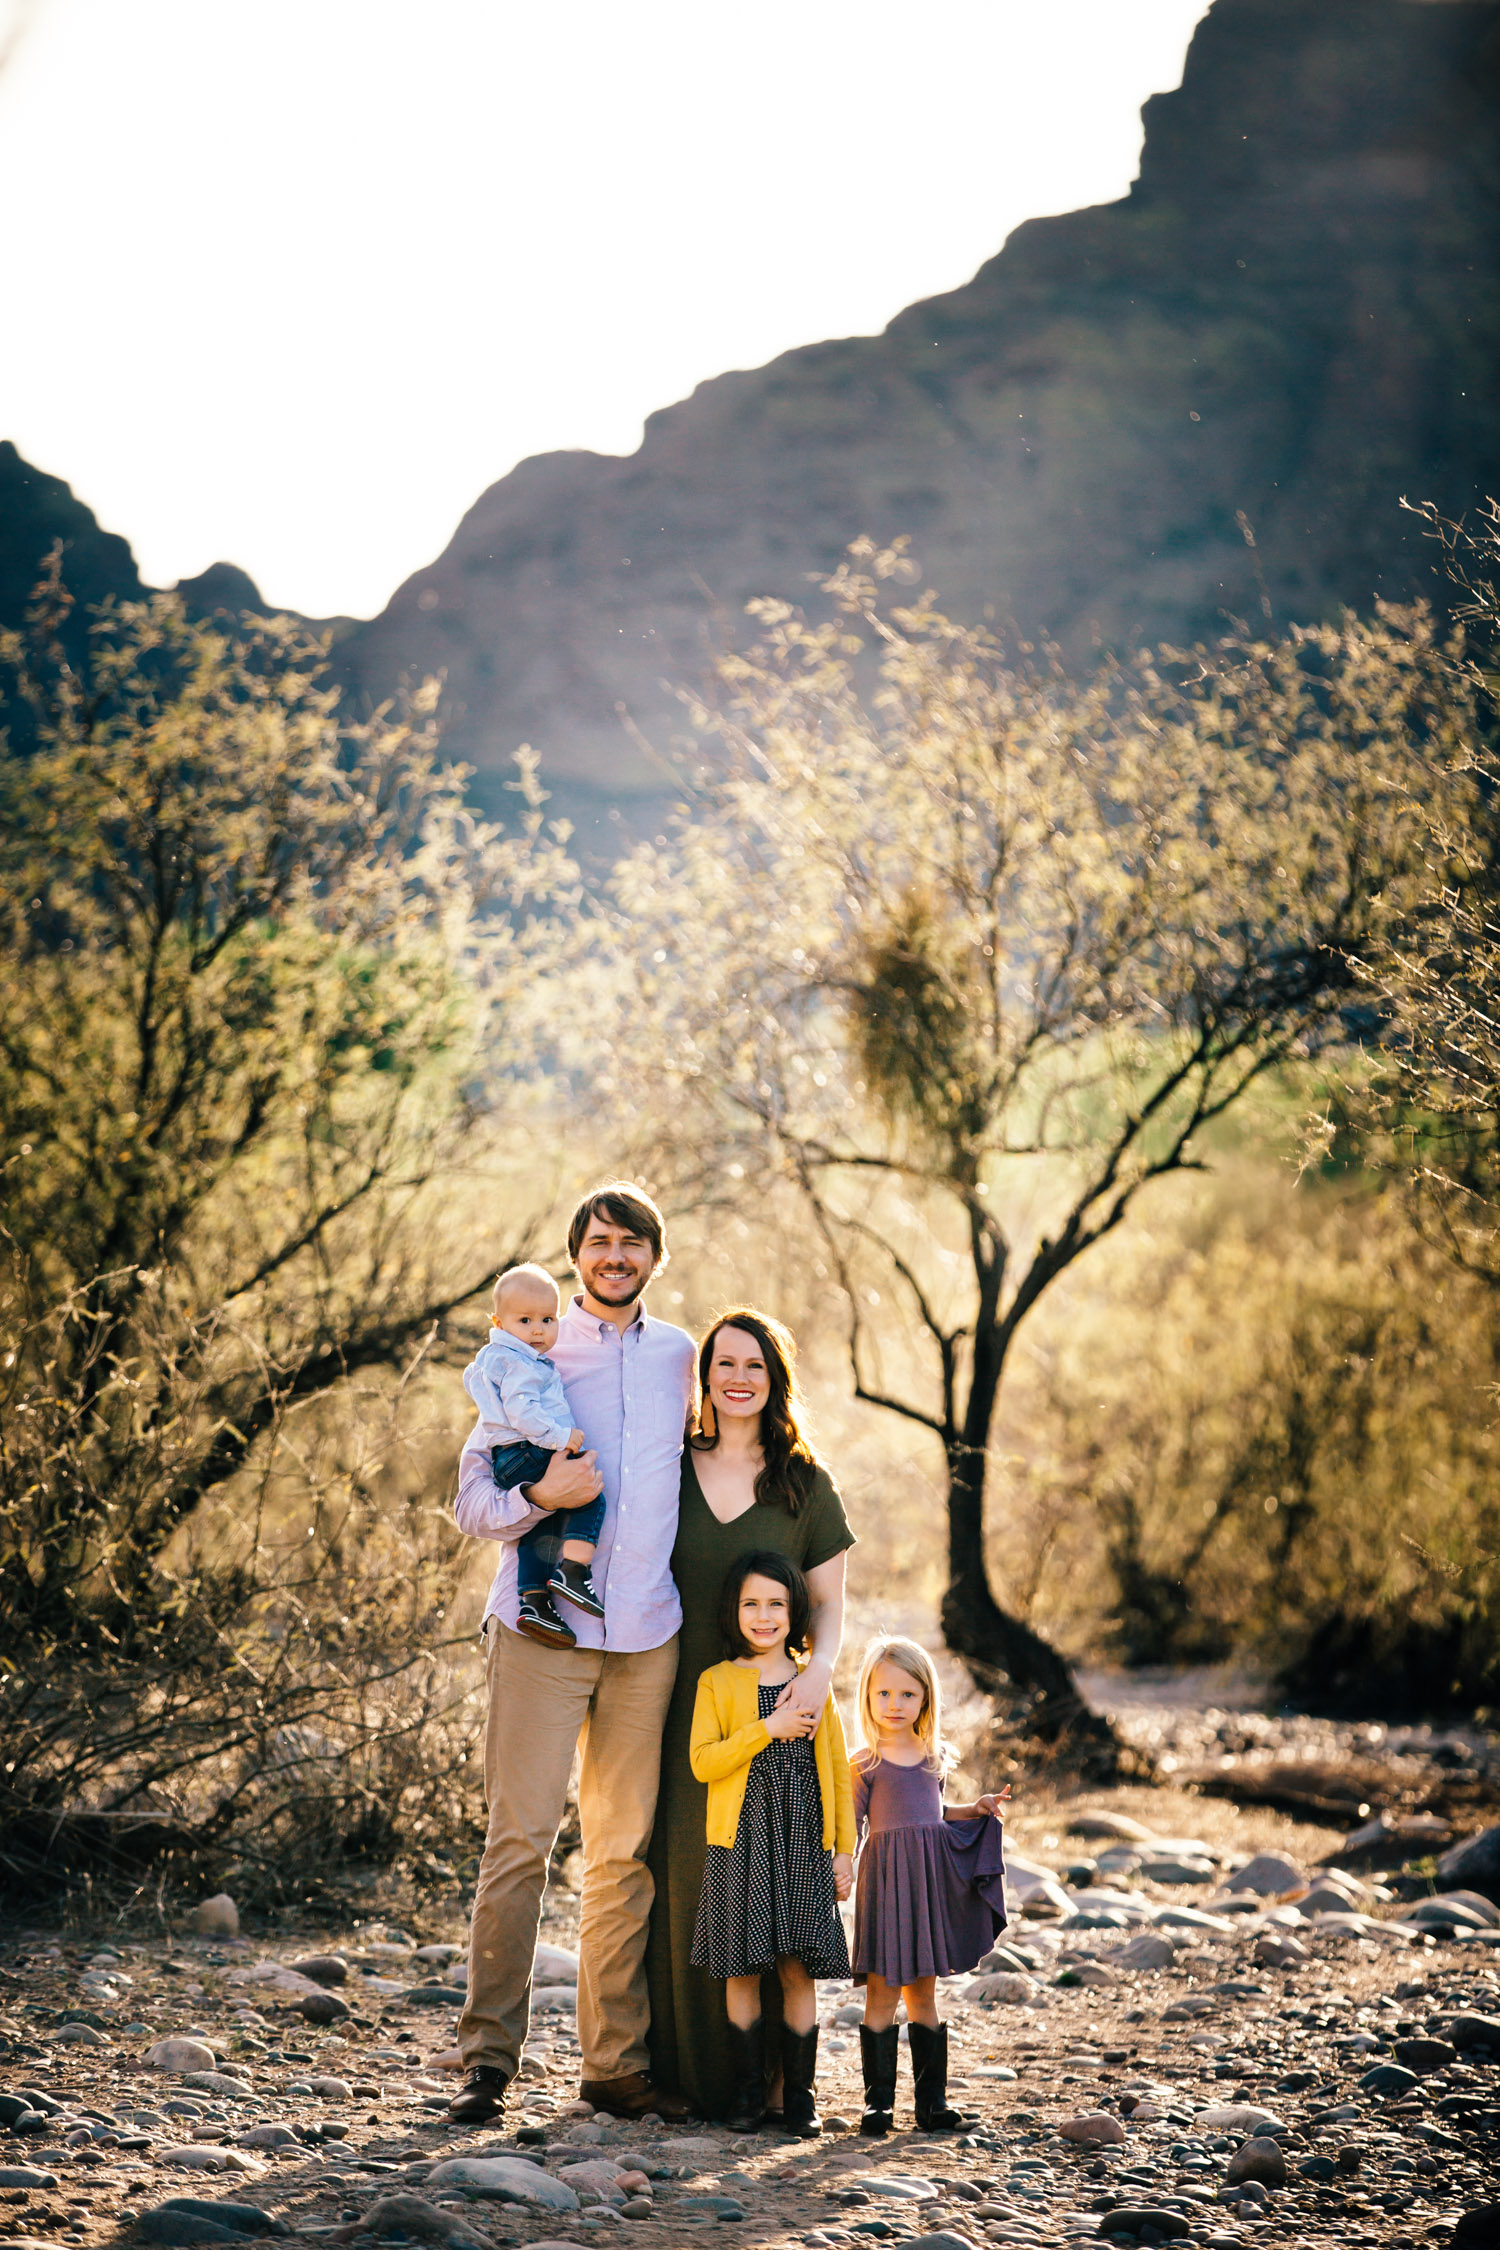 Young family photos sunshine mountains bold colorful Arizona